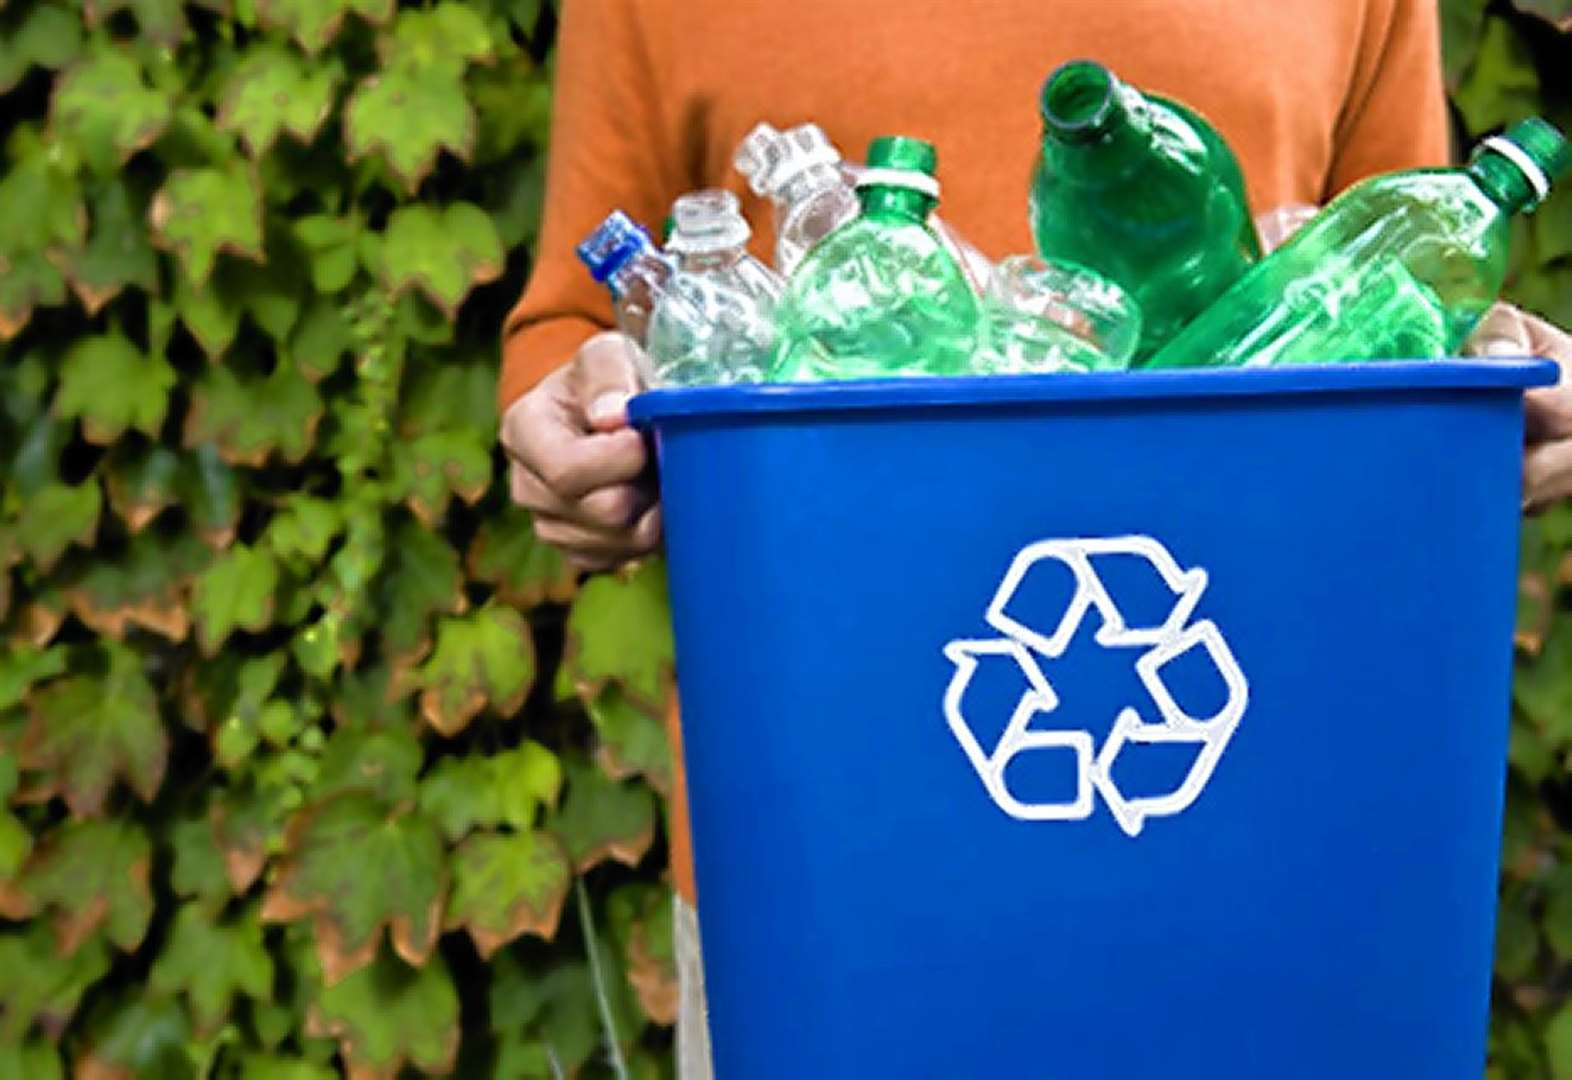 Staff numbers increased at area's recycling centres